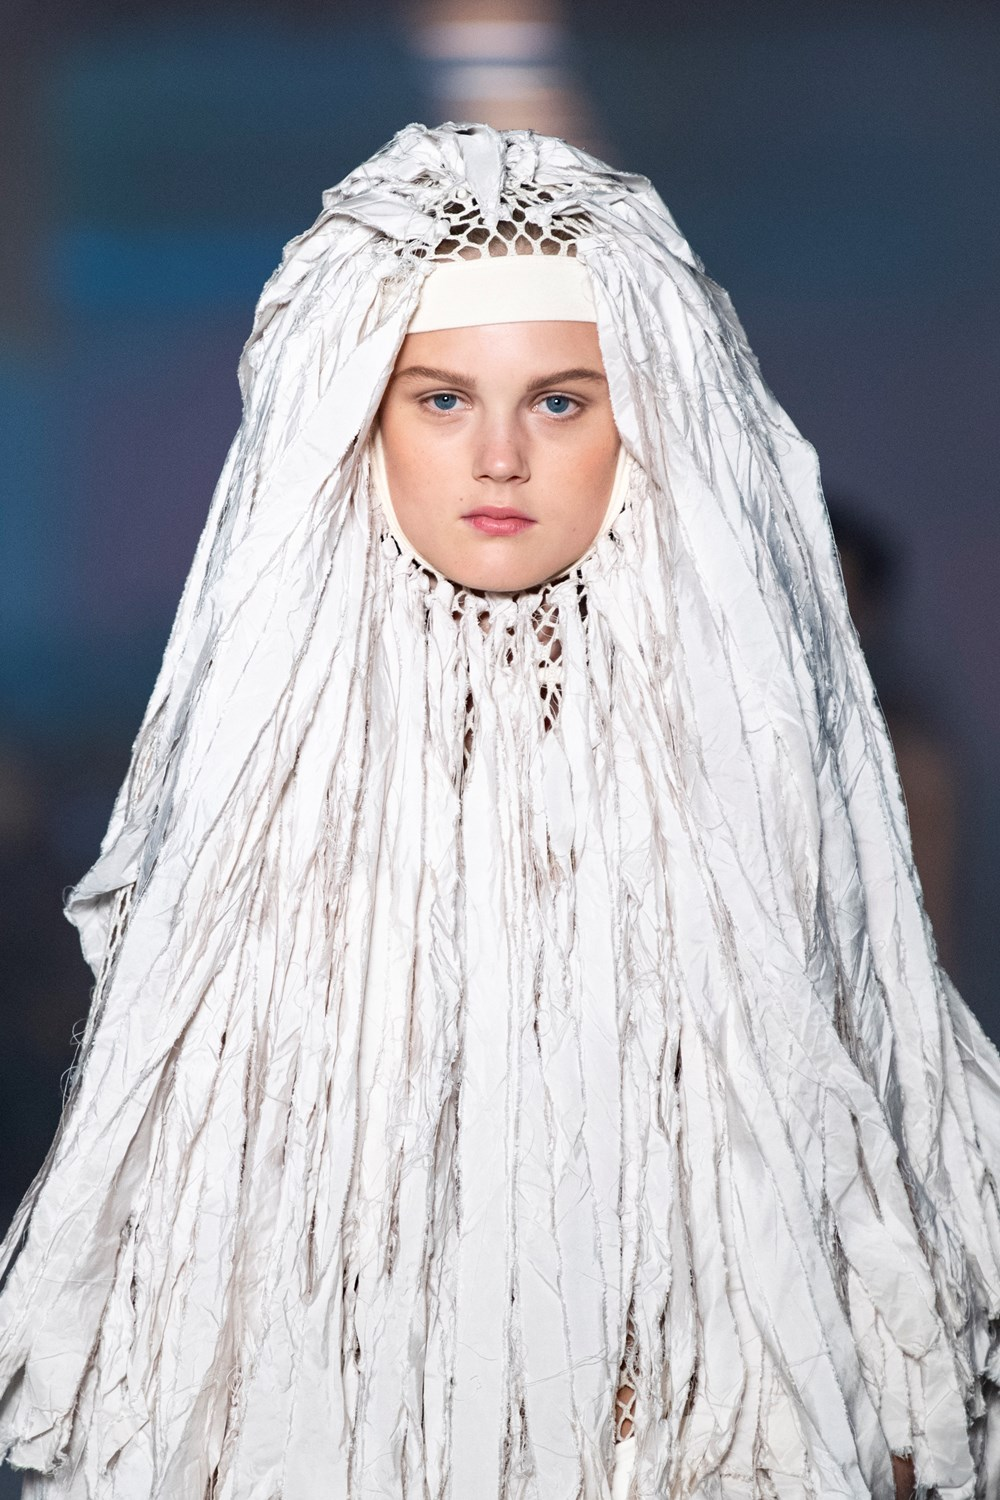 Alien Warrior Princess Spring 2020 Fashion Trend